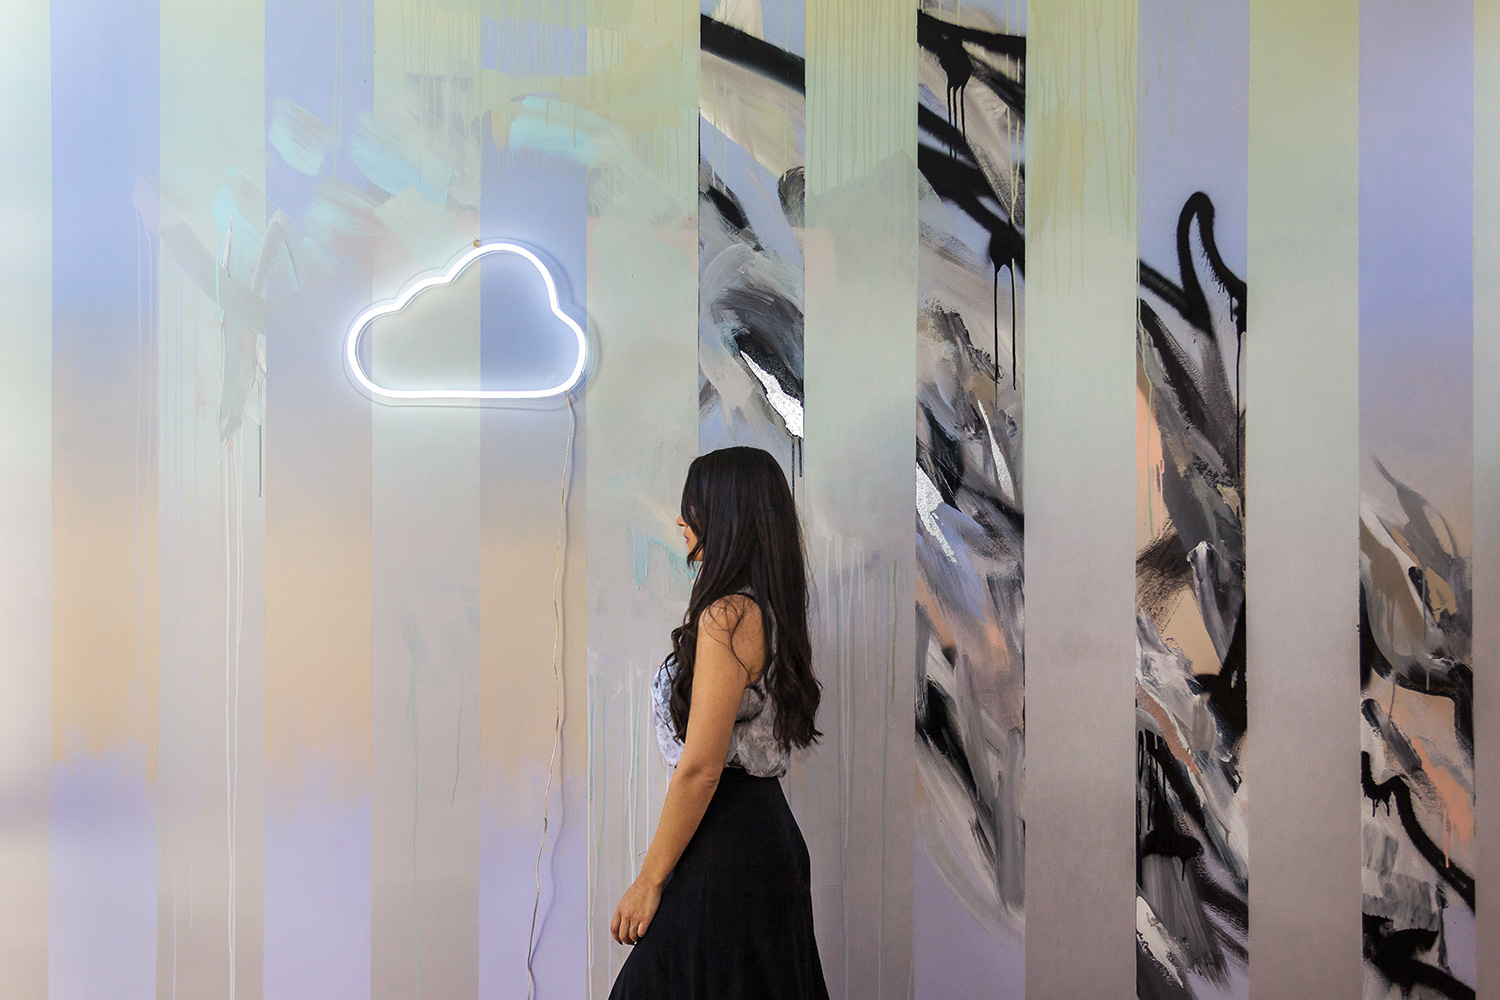 Model with long wavy black hair wears marble silk top and high waist modern skirt, behind her is an abstract painted wall mural, beautifully styled with an LED neon cloud sign.